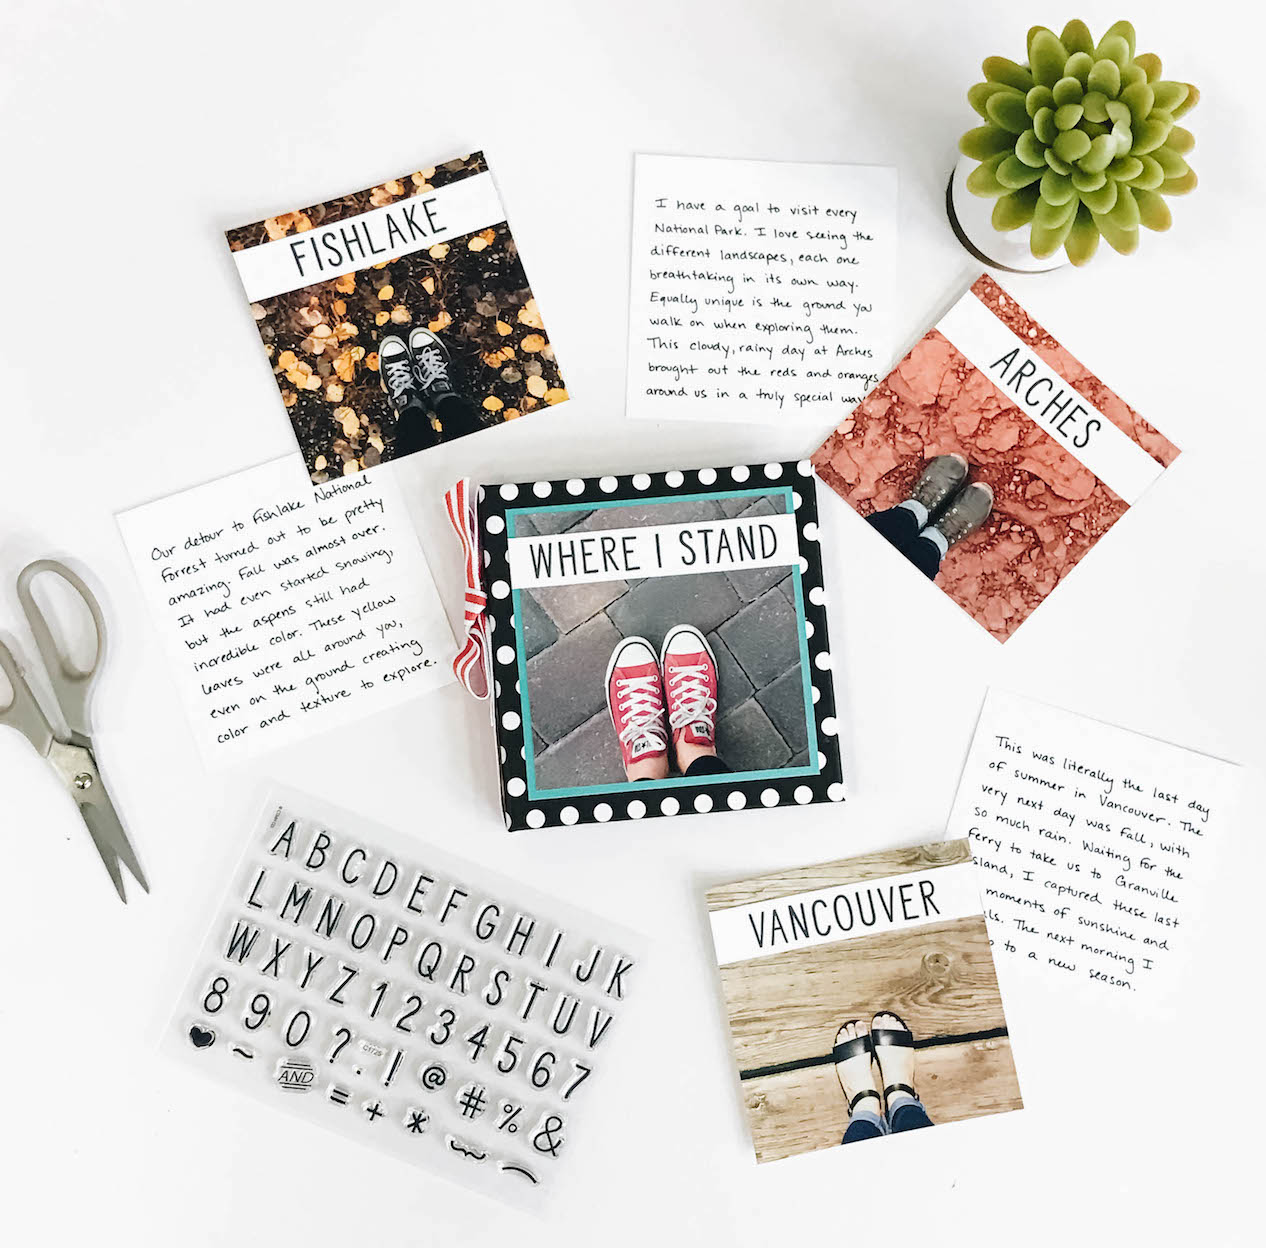 Getting Creative with Mini Albums #ctmh #closetomyheart #CTMHStorybyStacy #minialbum #scrapbooking #storyideas #memorykeeping #storytelling